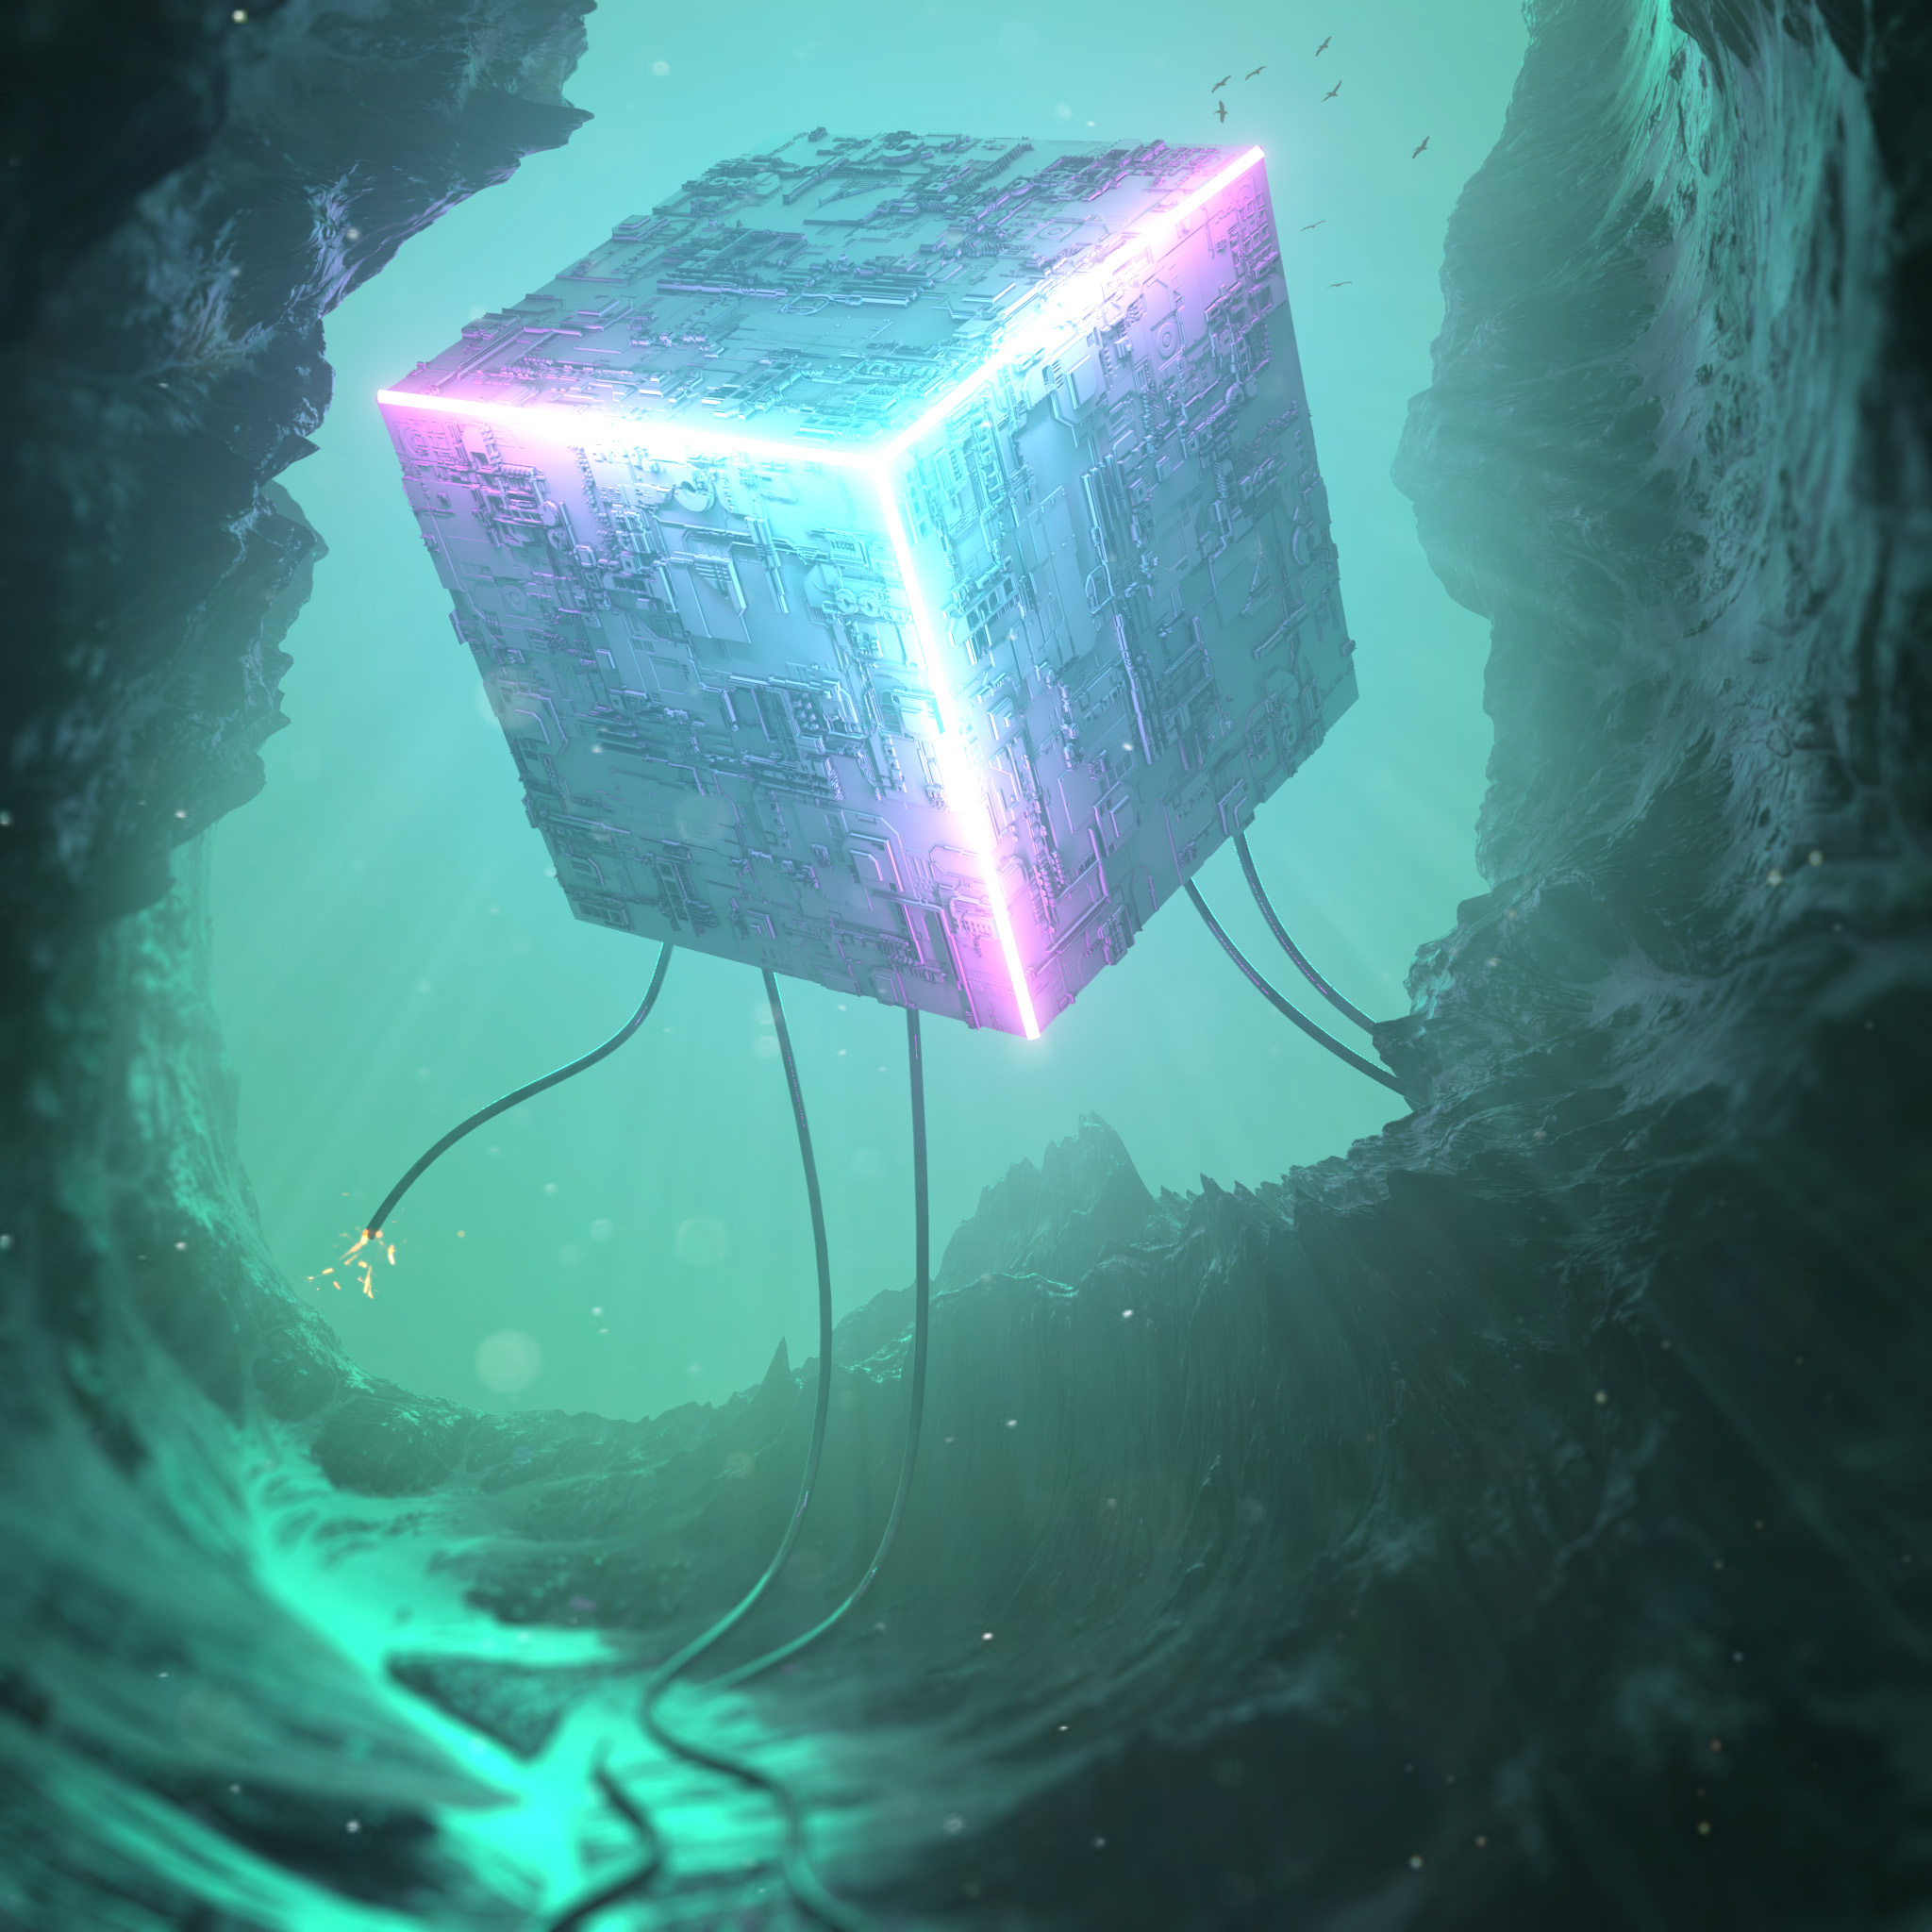 147611 download wallpaper Cube, 3D, Neon, Backlight, Illumination screensavers and pictures for free